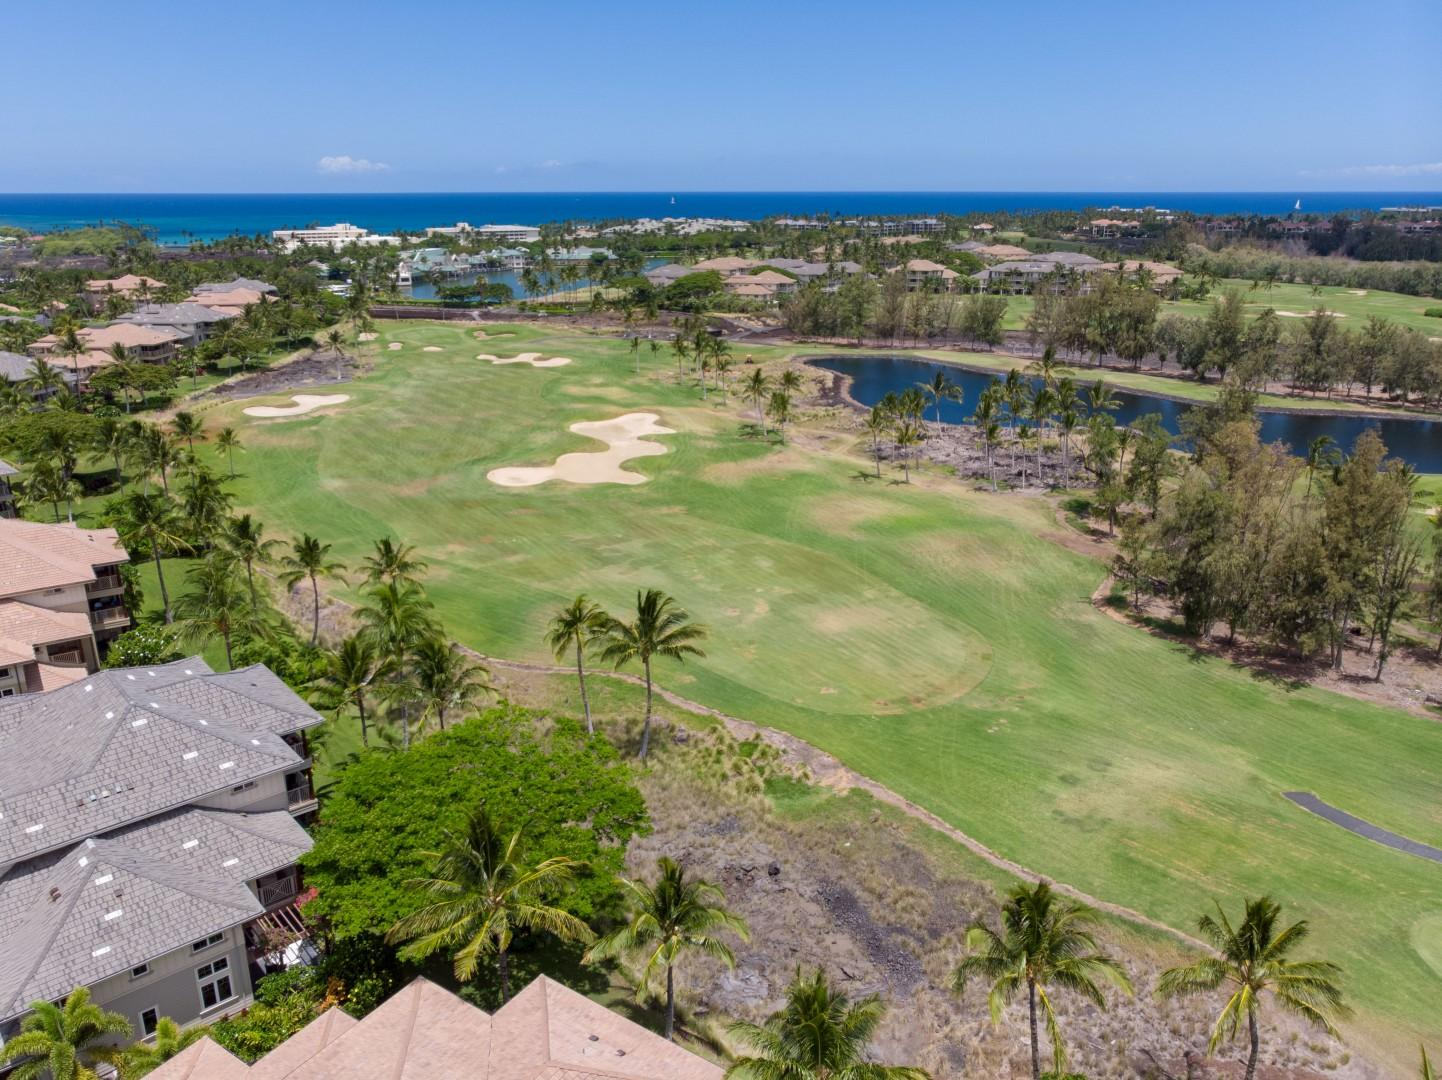 Aerial View of the King's Golf Course Bordering the Complex